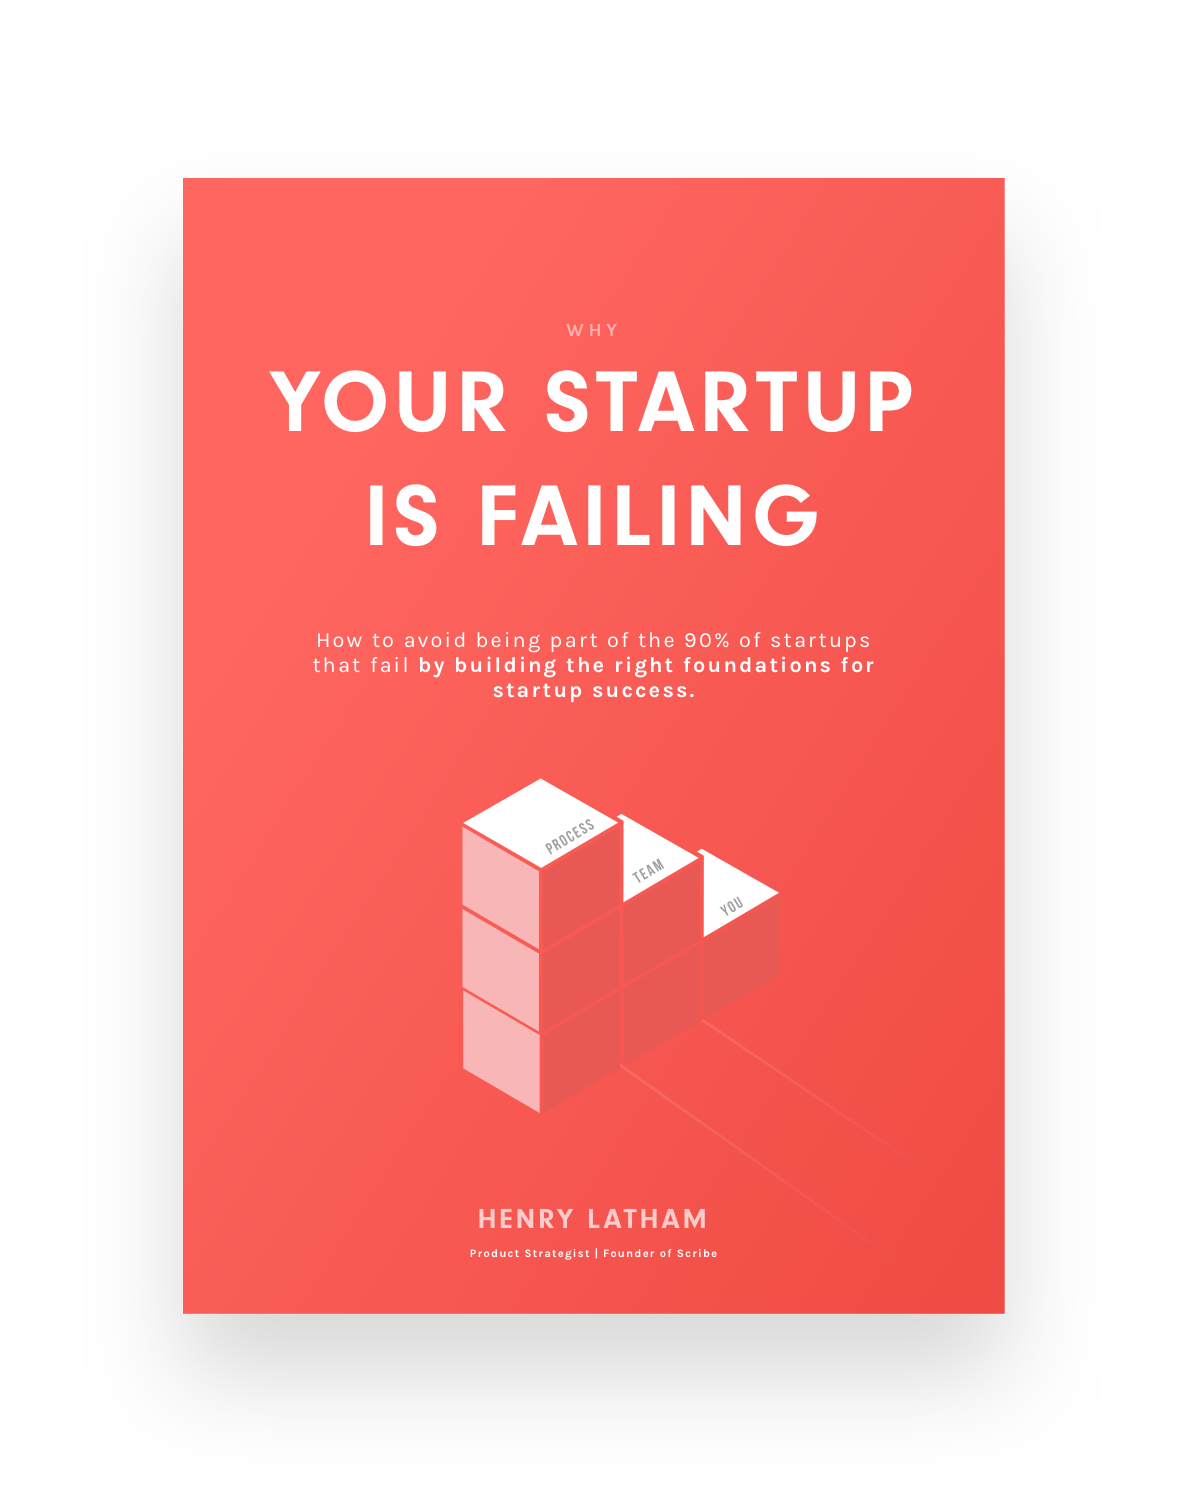 Why Your Startup is Failing